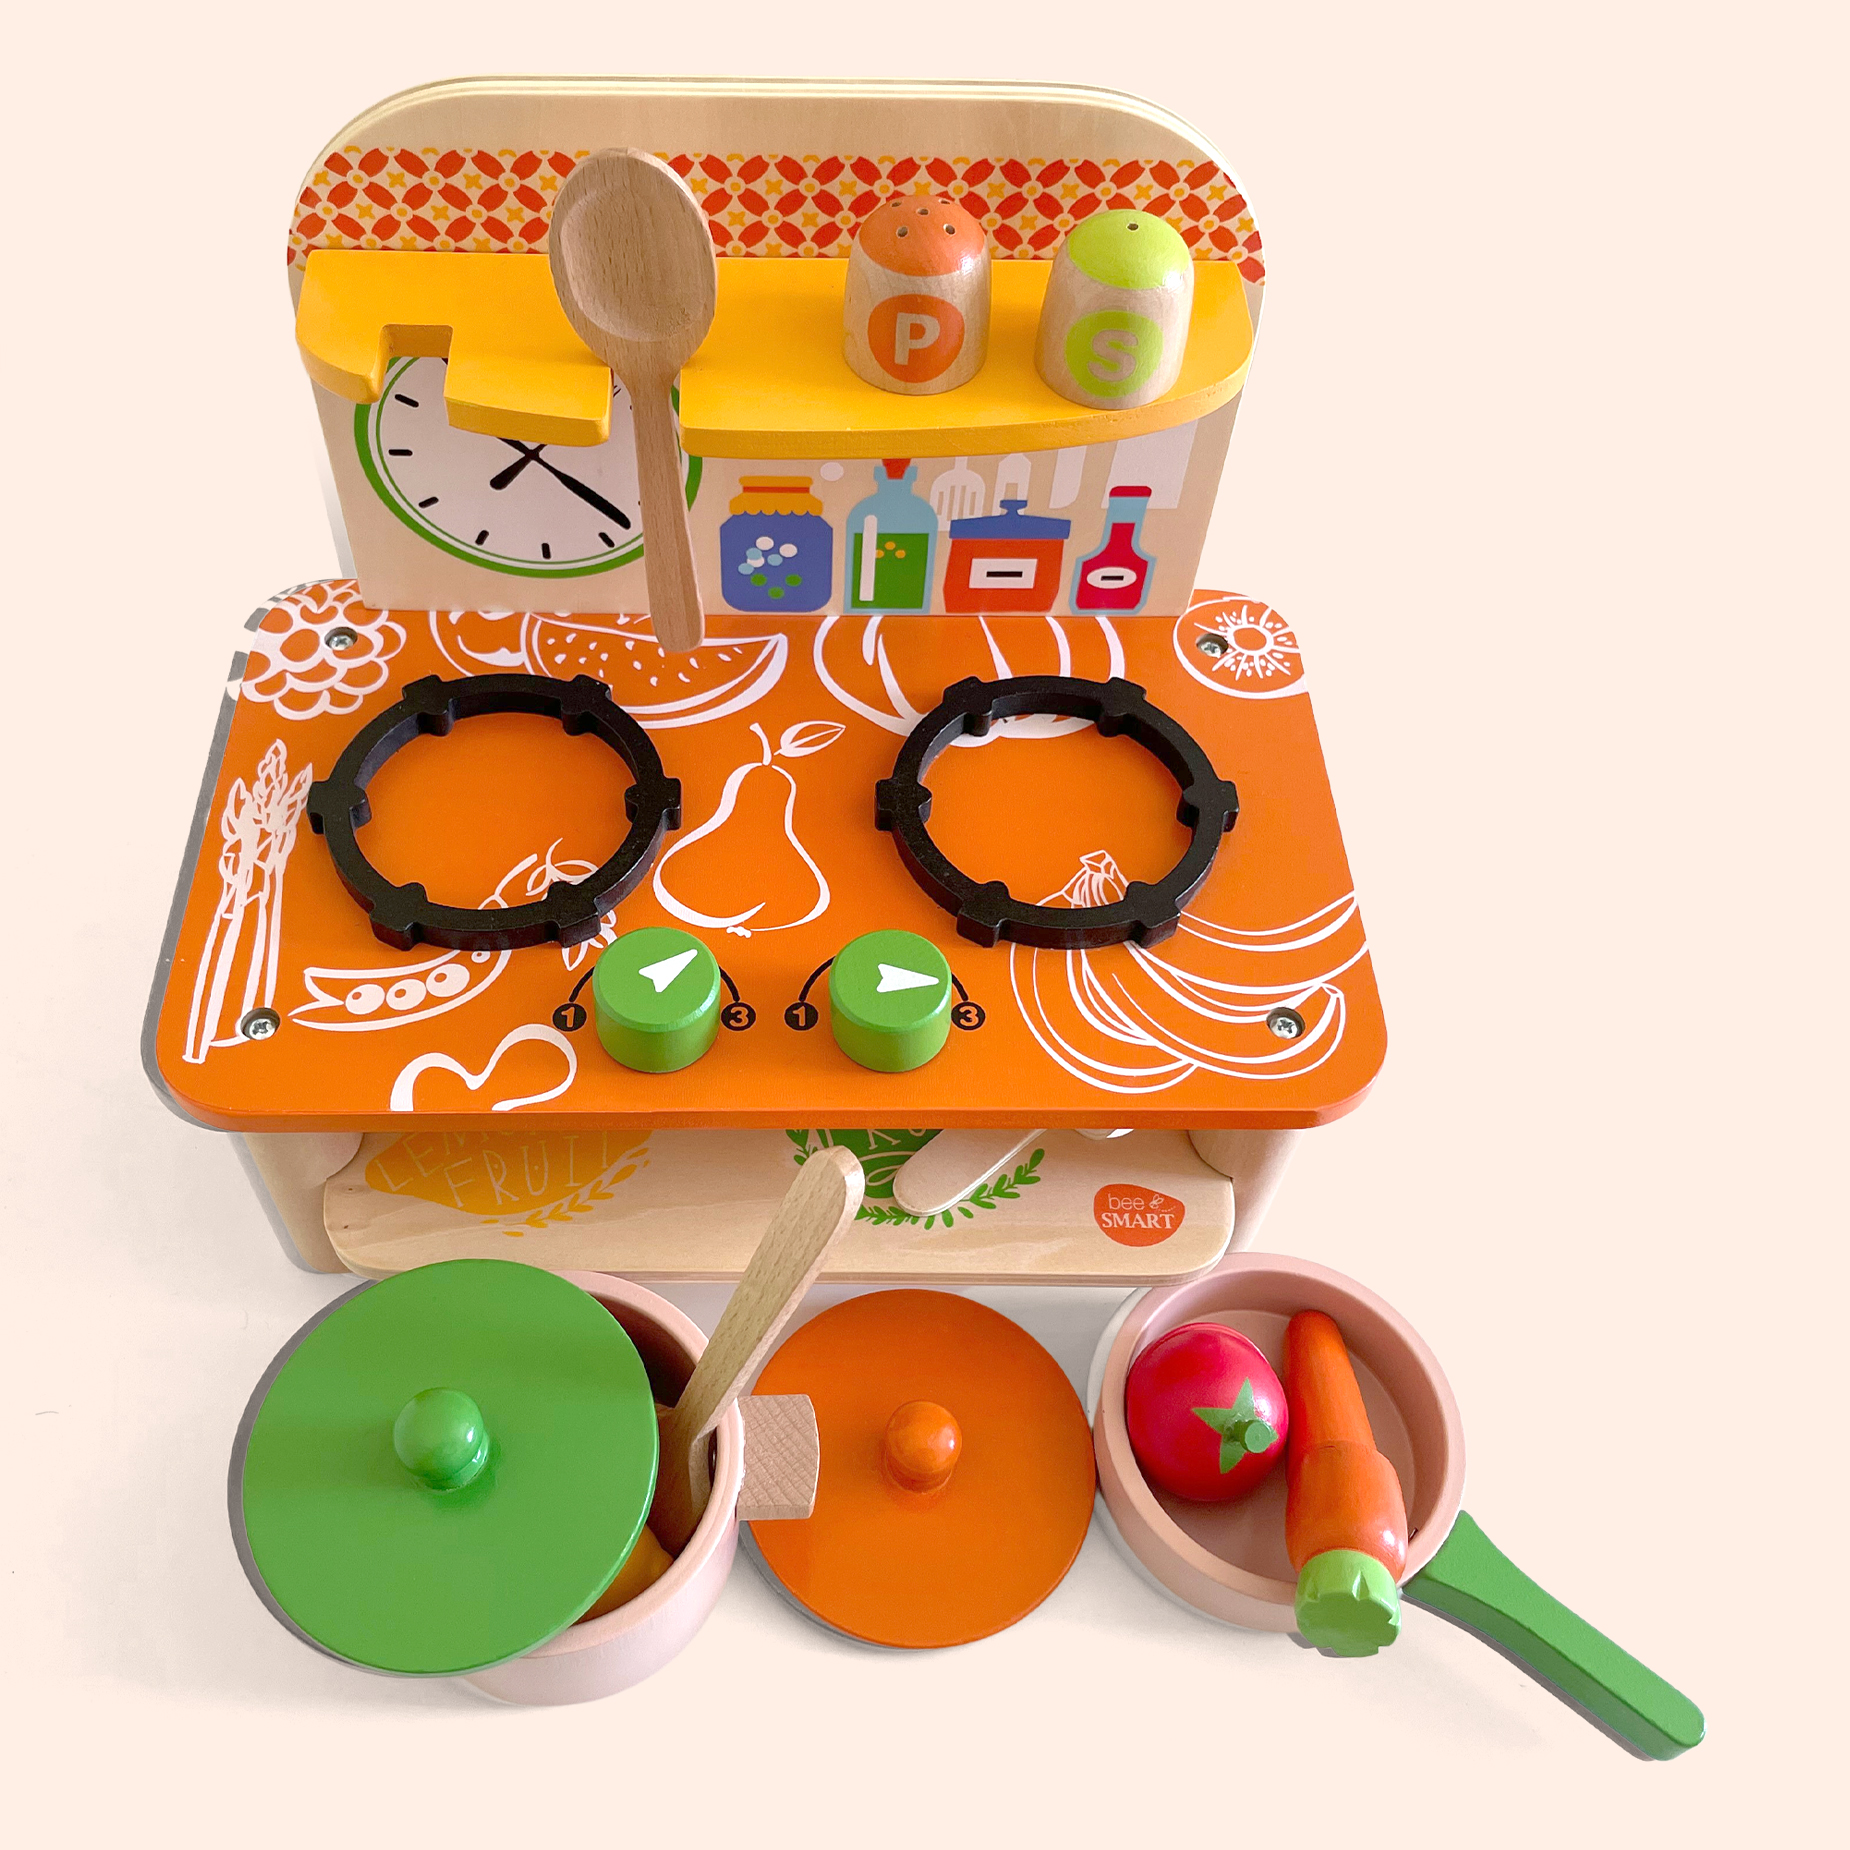 Kids Kitchen Set to improve hand and eye co-ordination